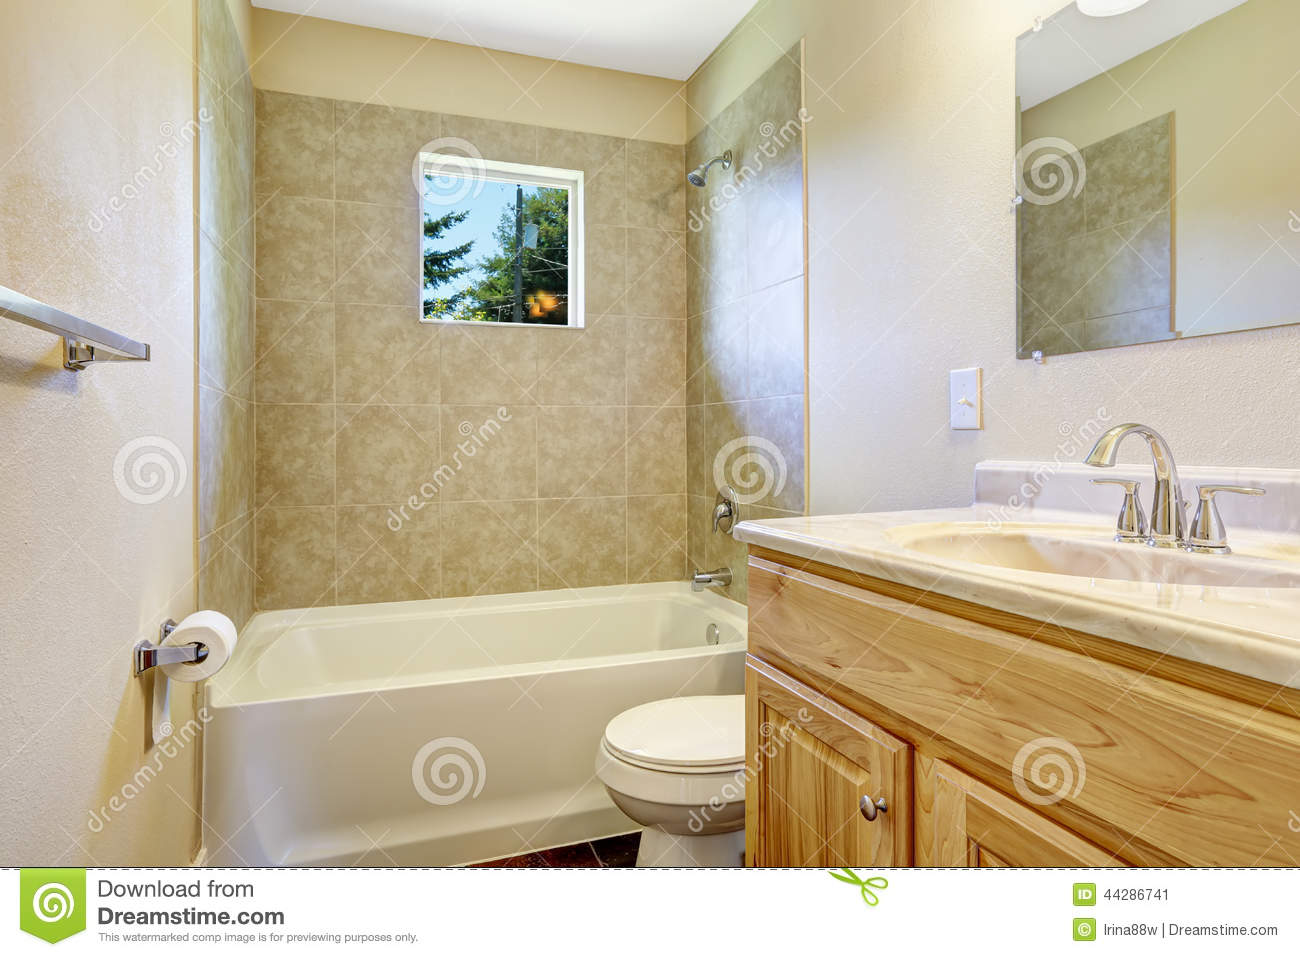 Empty Bathroom With Tile Wall Trim And Window Stock Image - Image of ...